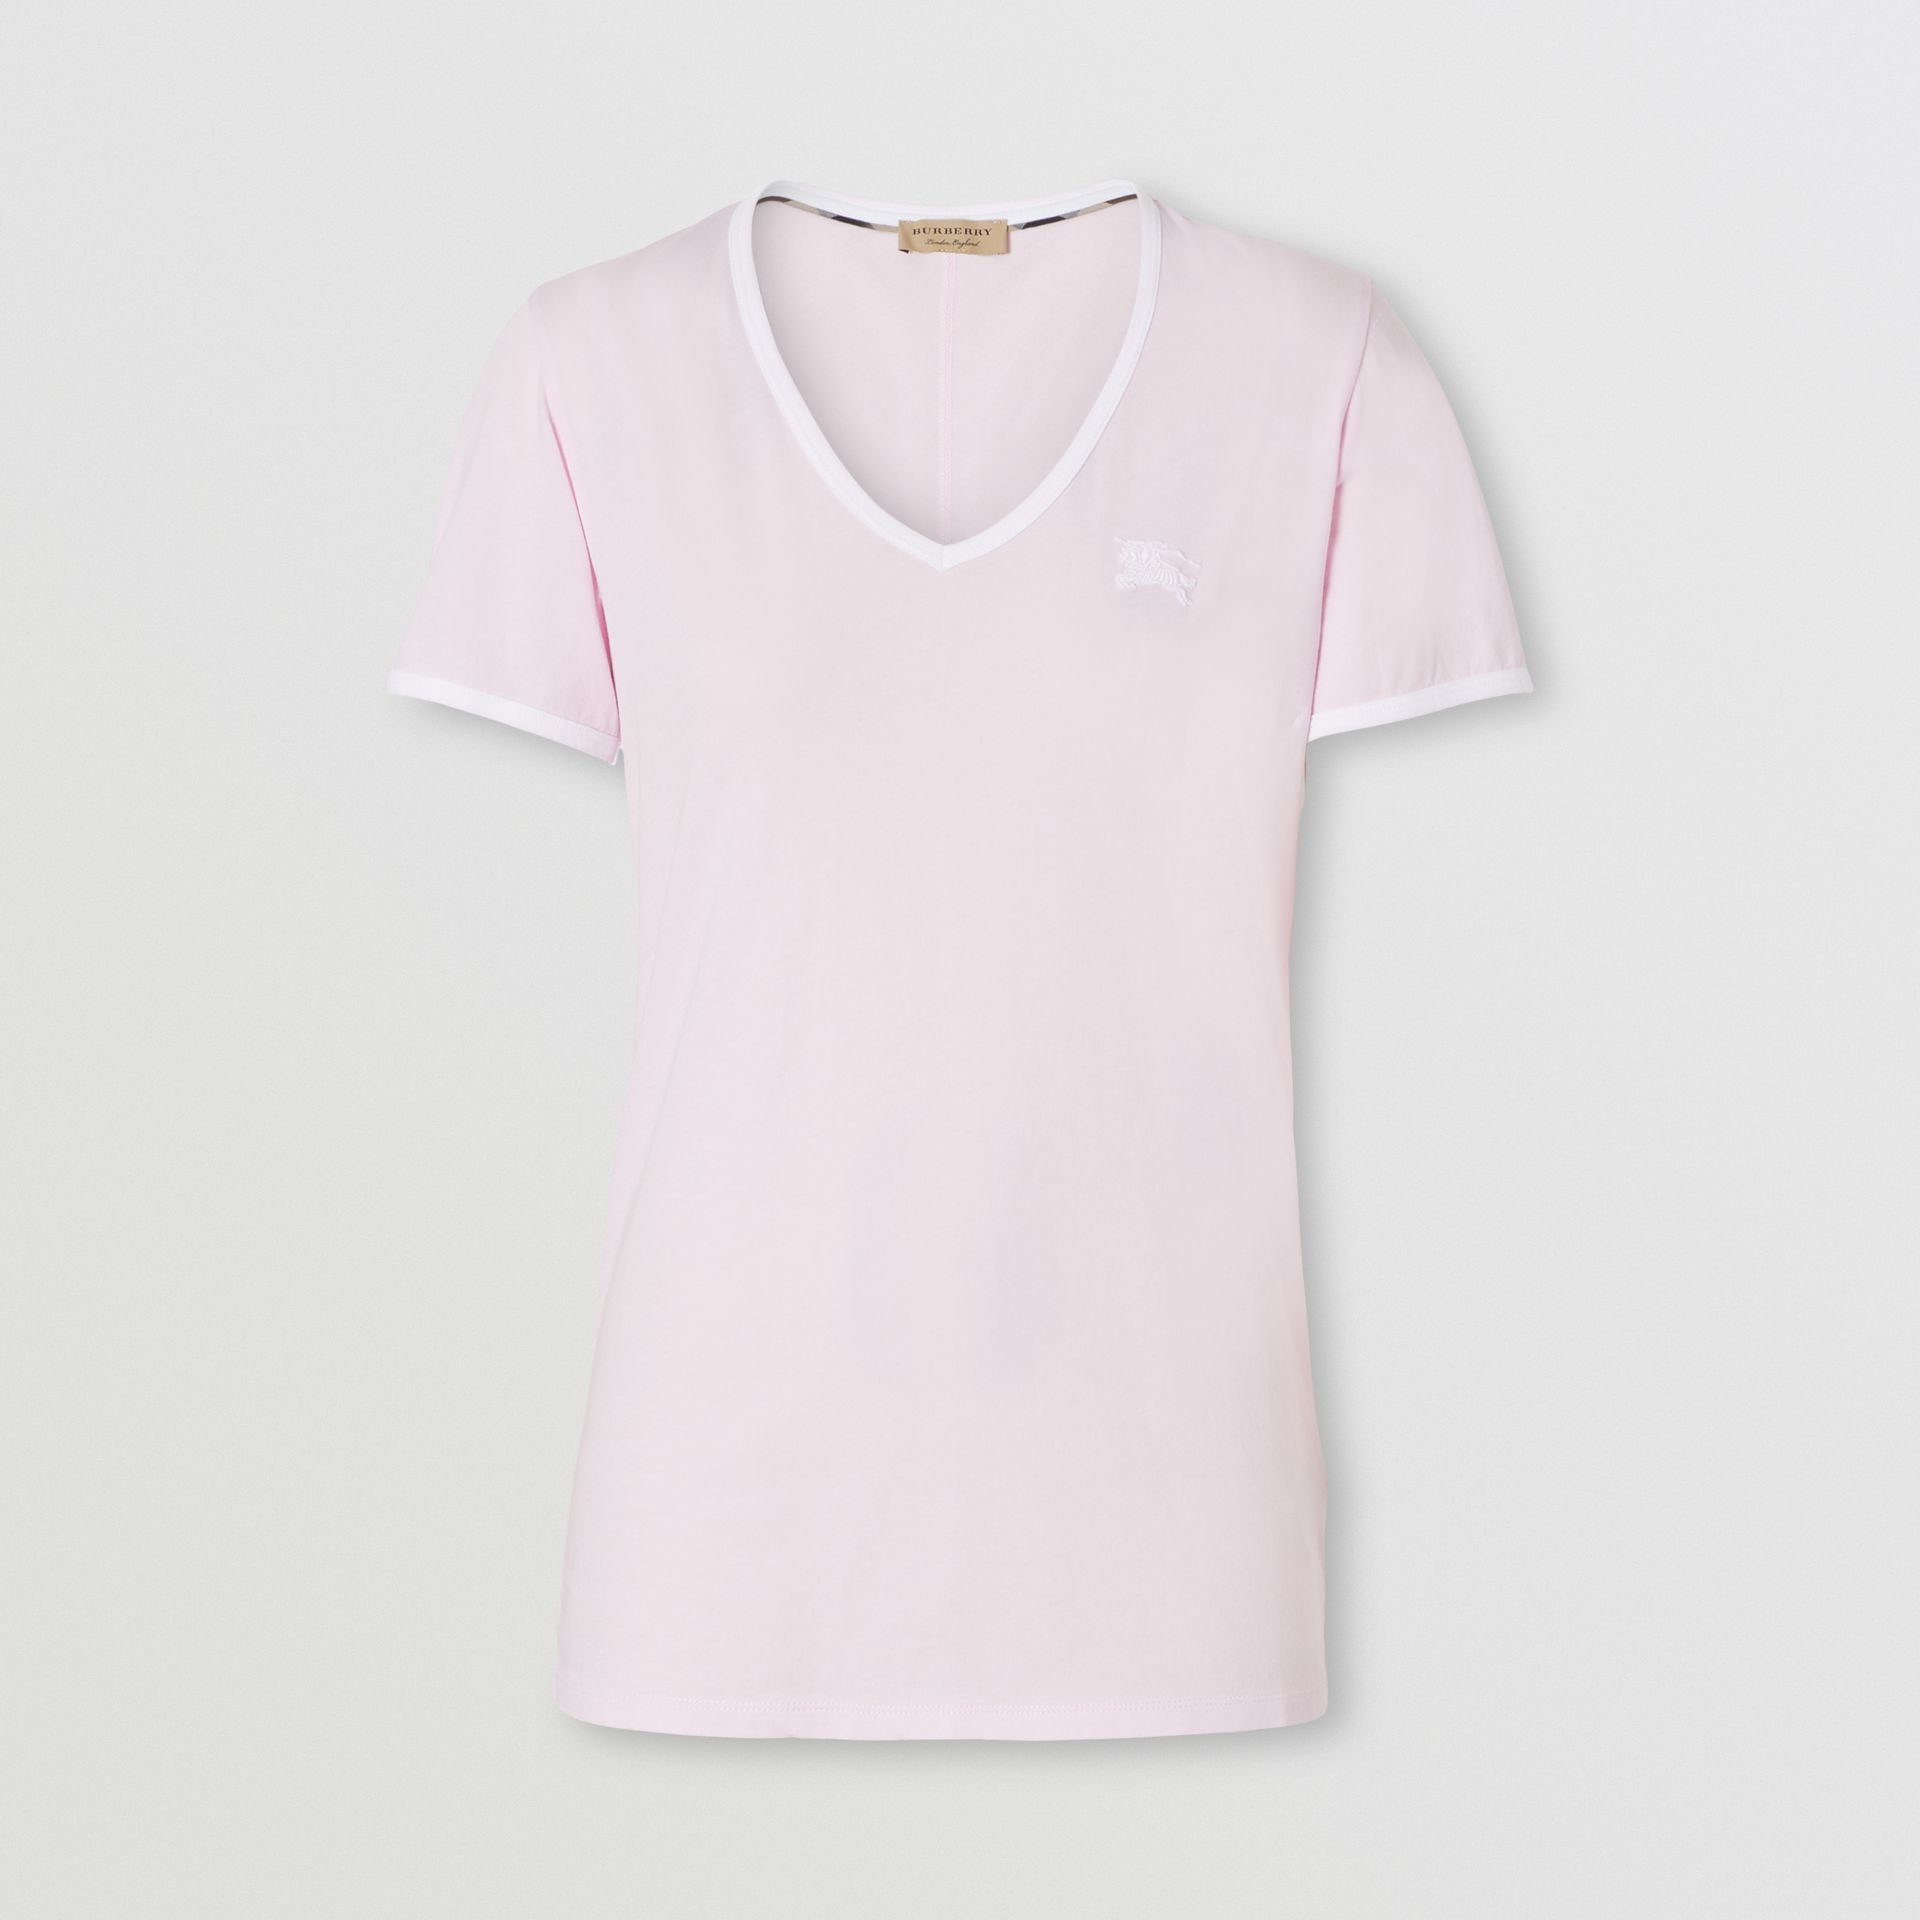 Embroidered EKD Cotton T-shirt in City Pink - Women | Burberry Hong Kong S.A.R. - gallery image 0